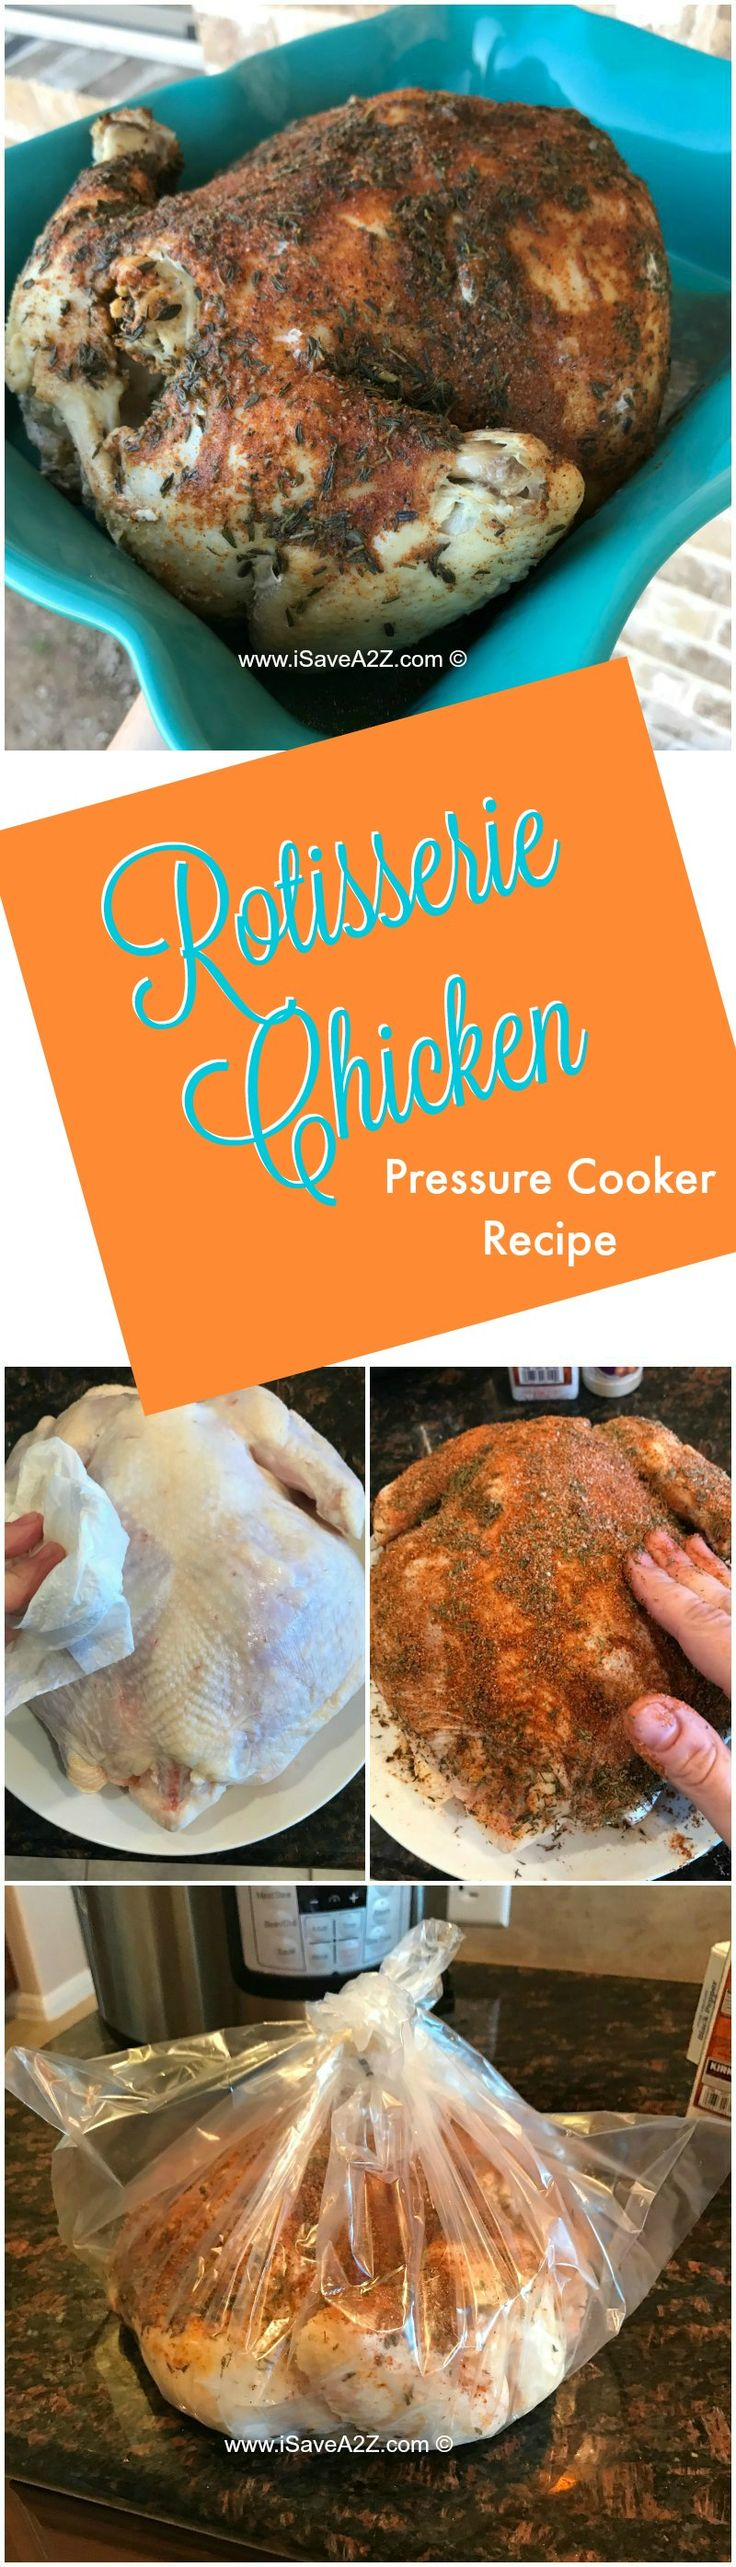 Cook a Rotisserie chicken in the pressure cooker in 30 minutes flat!  Plus a HACK to keep the seasonings on!